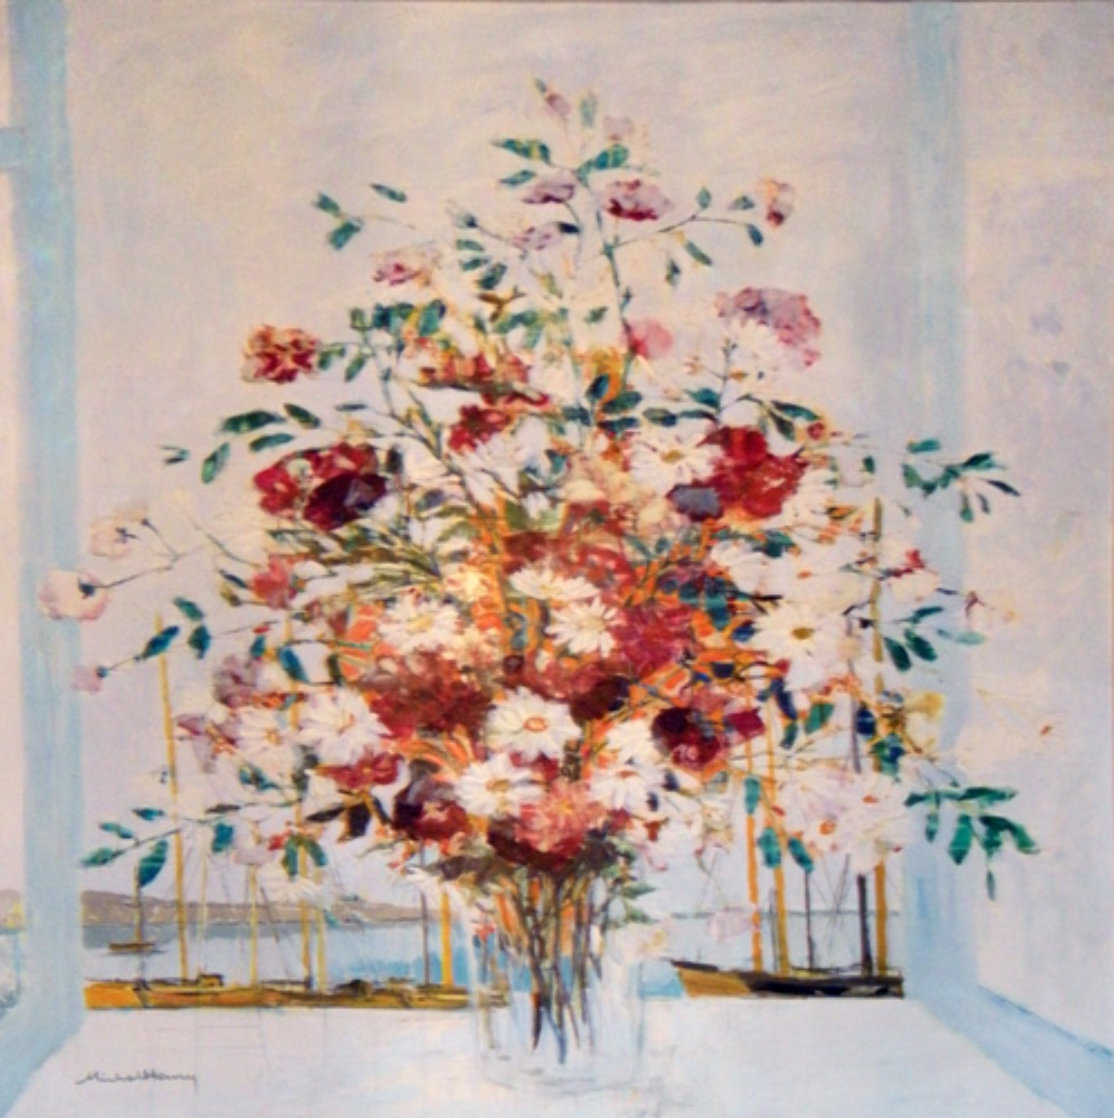 Untitled Floral Bouquet 1985 61x48 Super Huge Original Painting by Michel Henry